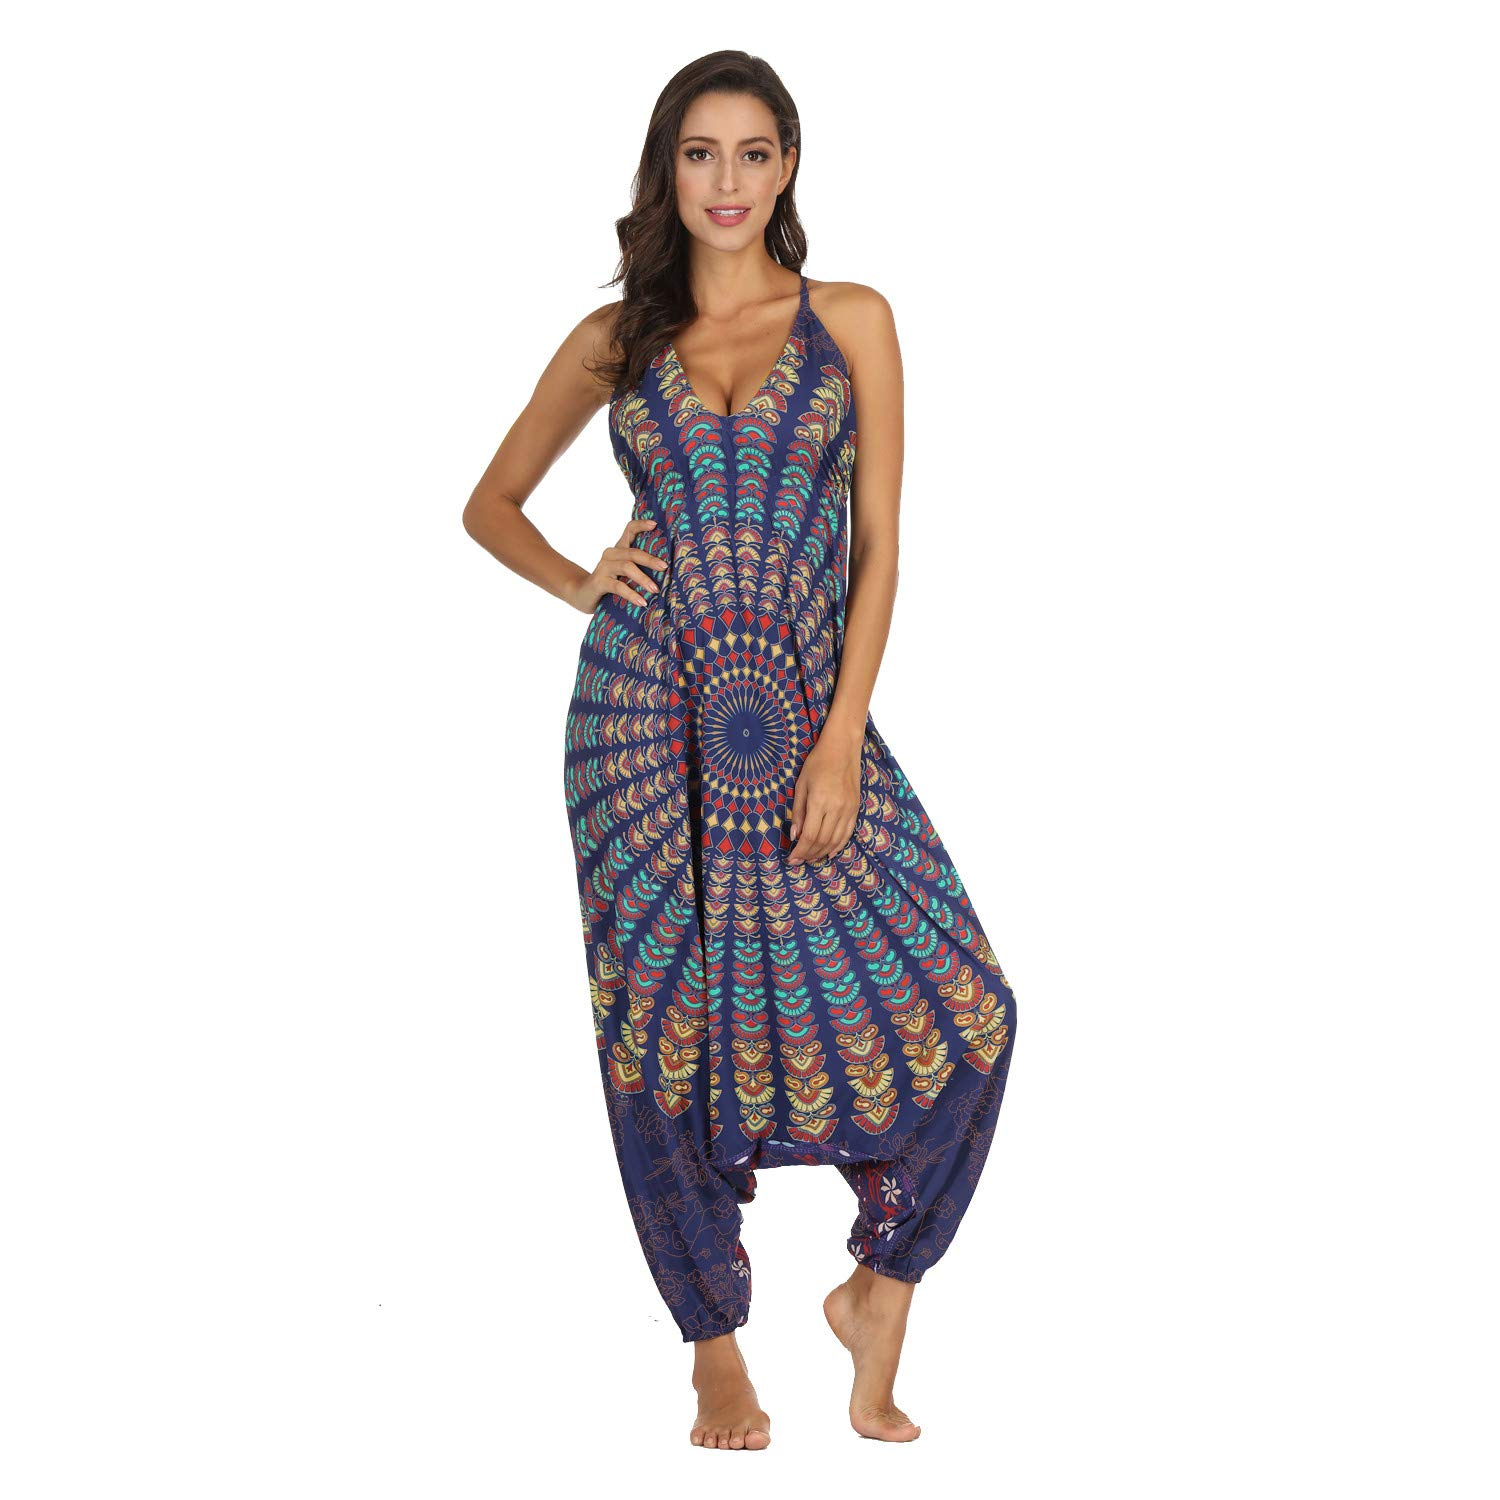 Sunyastor Jumpsuits for Women Deep V-Neck Rompers Loose Playsuit Gym Yoga Gypsy Jogging Harem Pants Baggy Palazzo Trousers